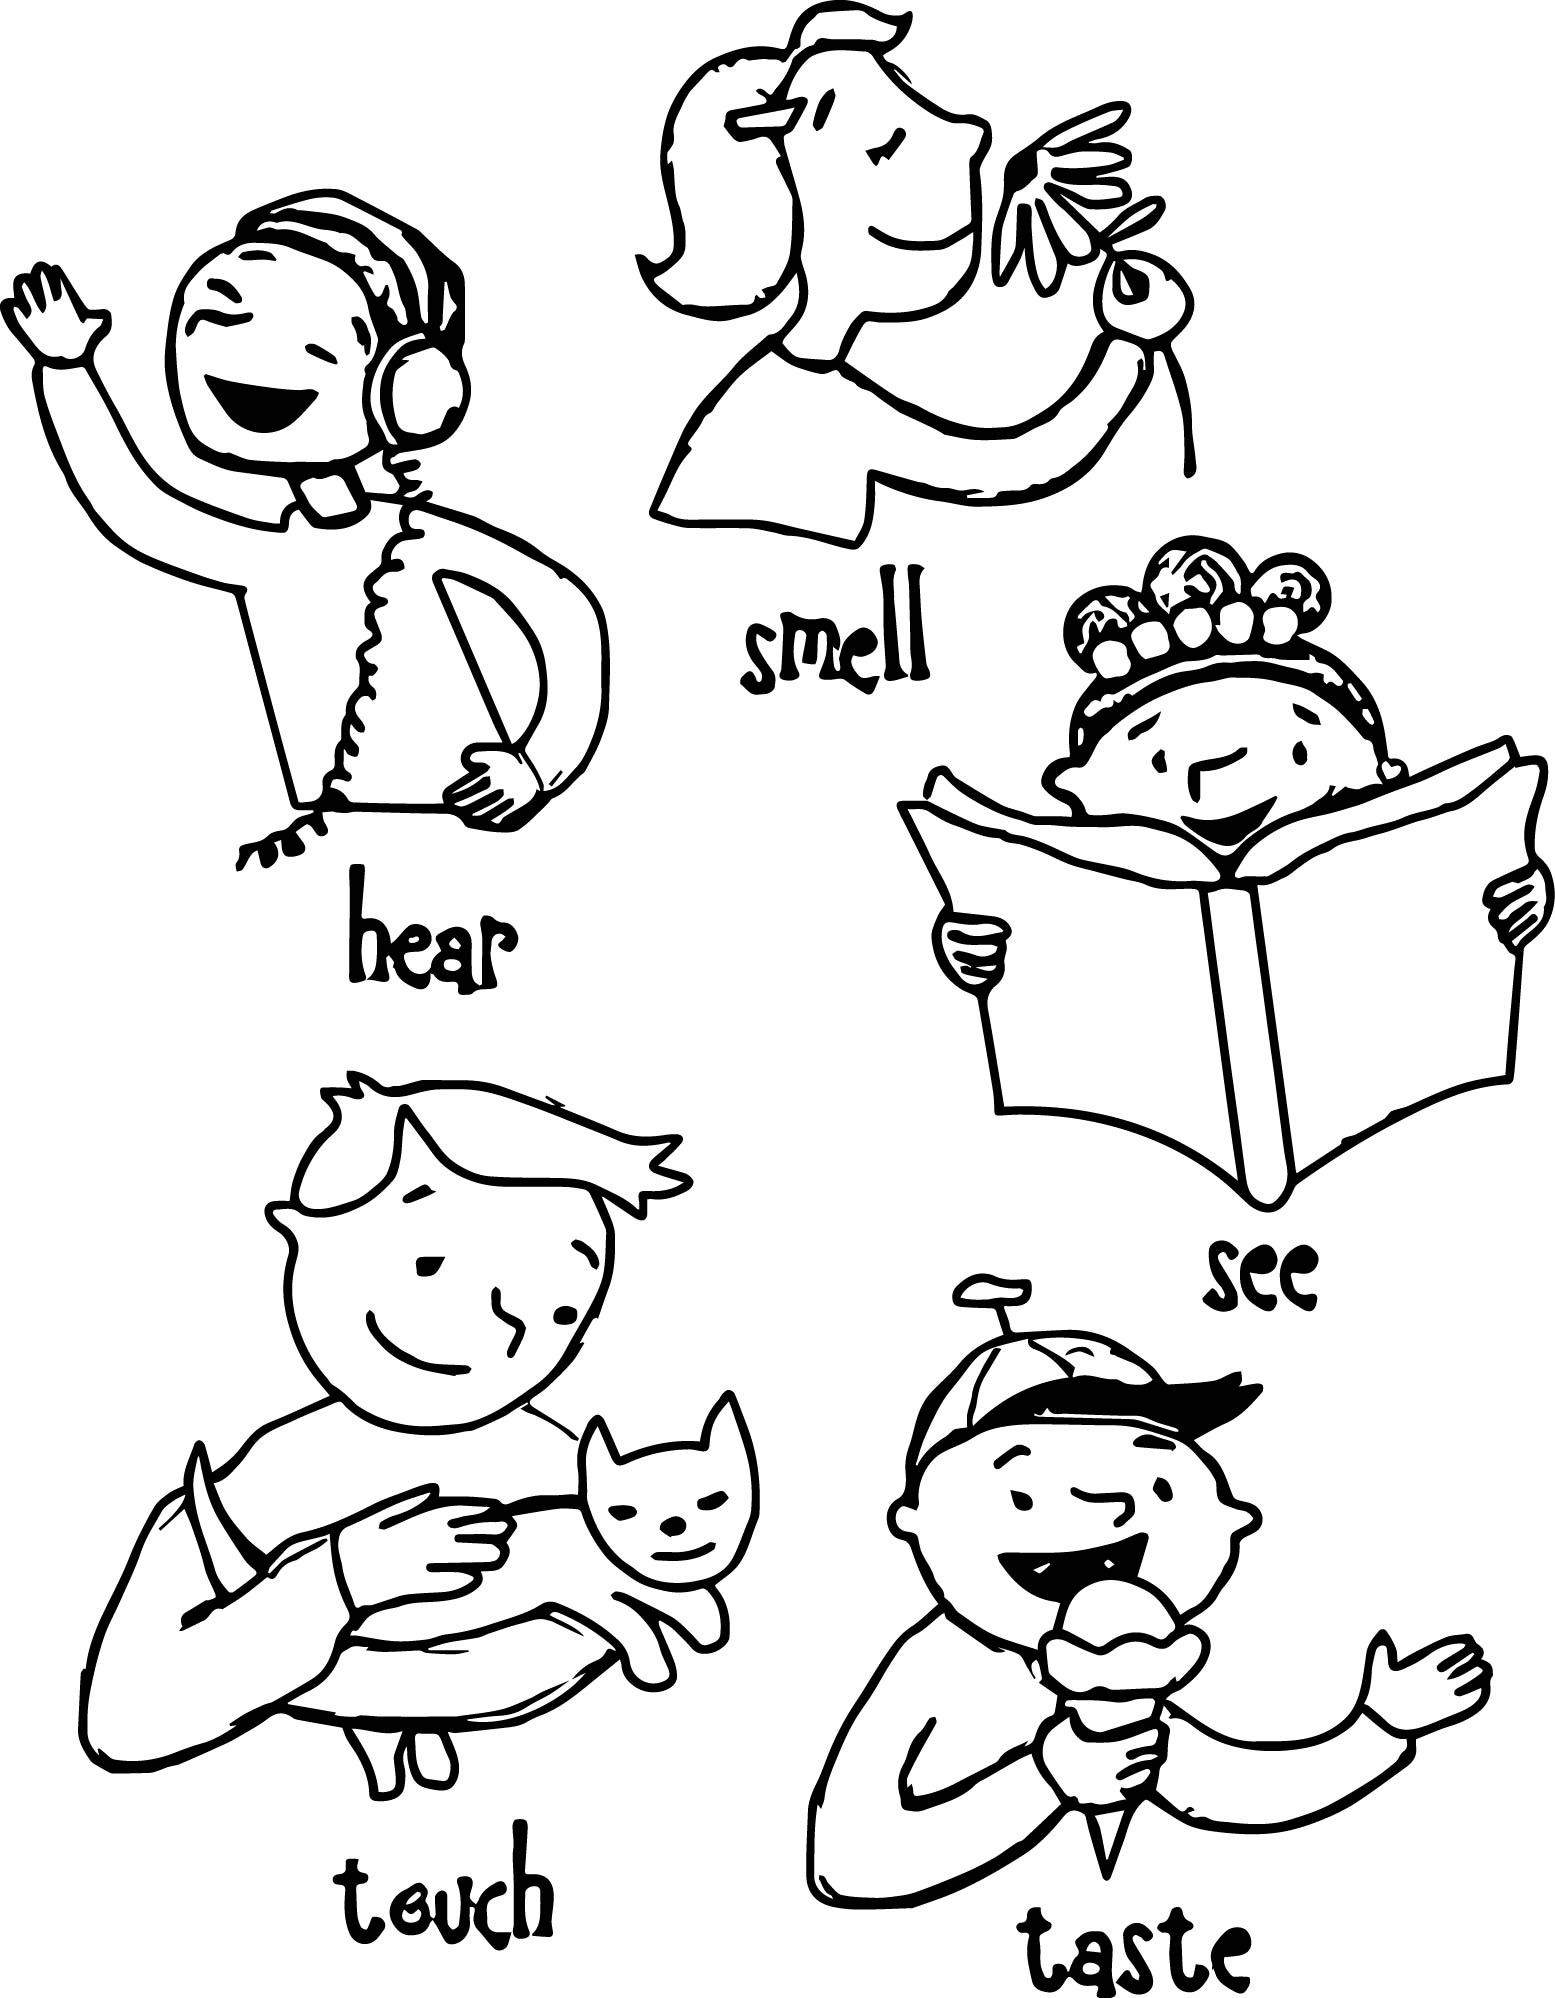 Awesome Children 5 Senses Coloring Page